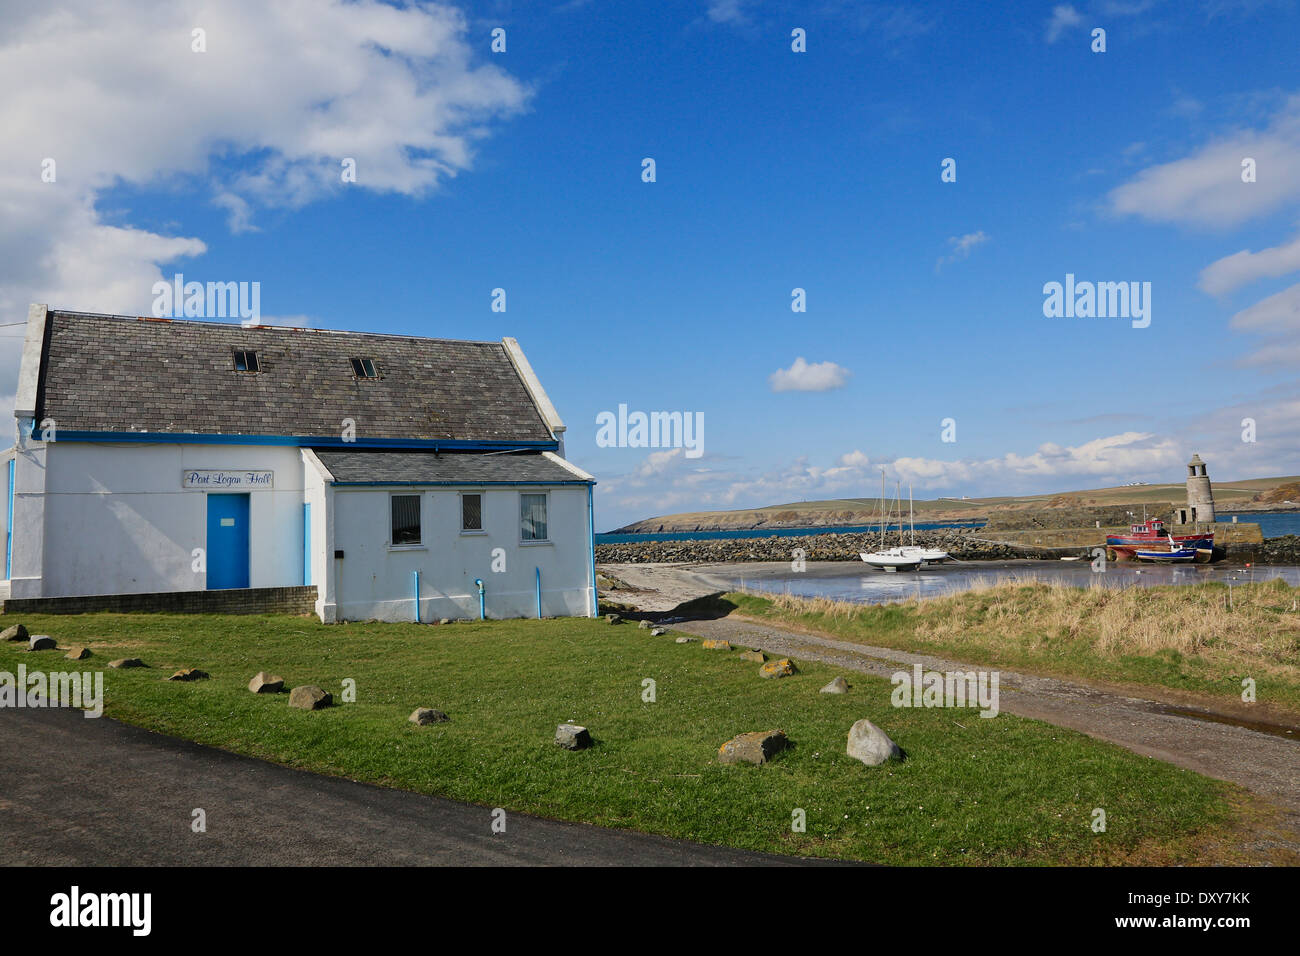 Port Logan Village Hall and Post Office, Port Logan, 'The Rhines' Dumfries and Galloway, Scotland - Stock Image